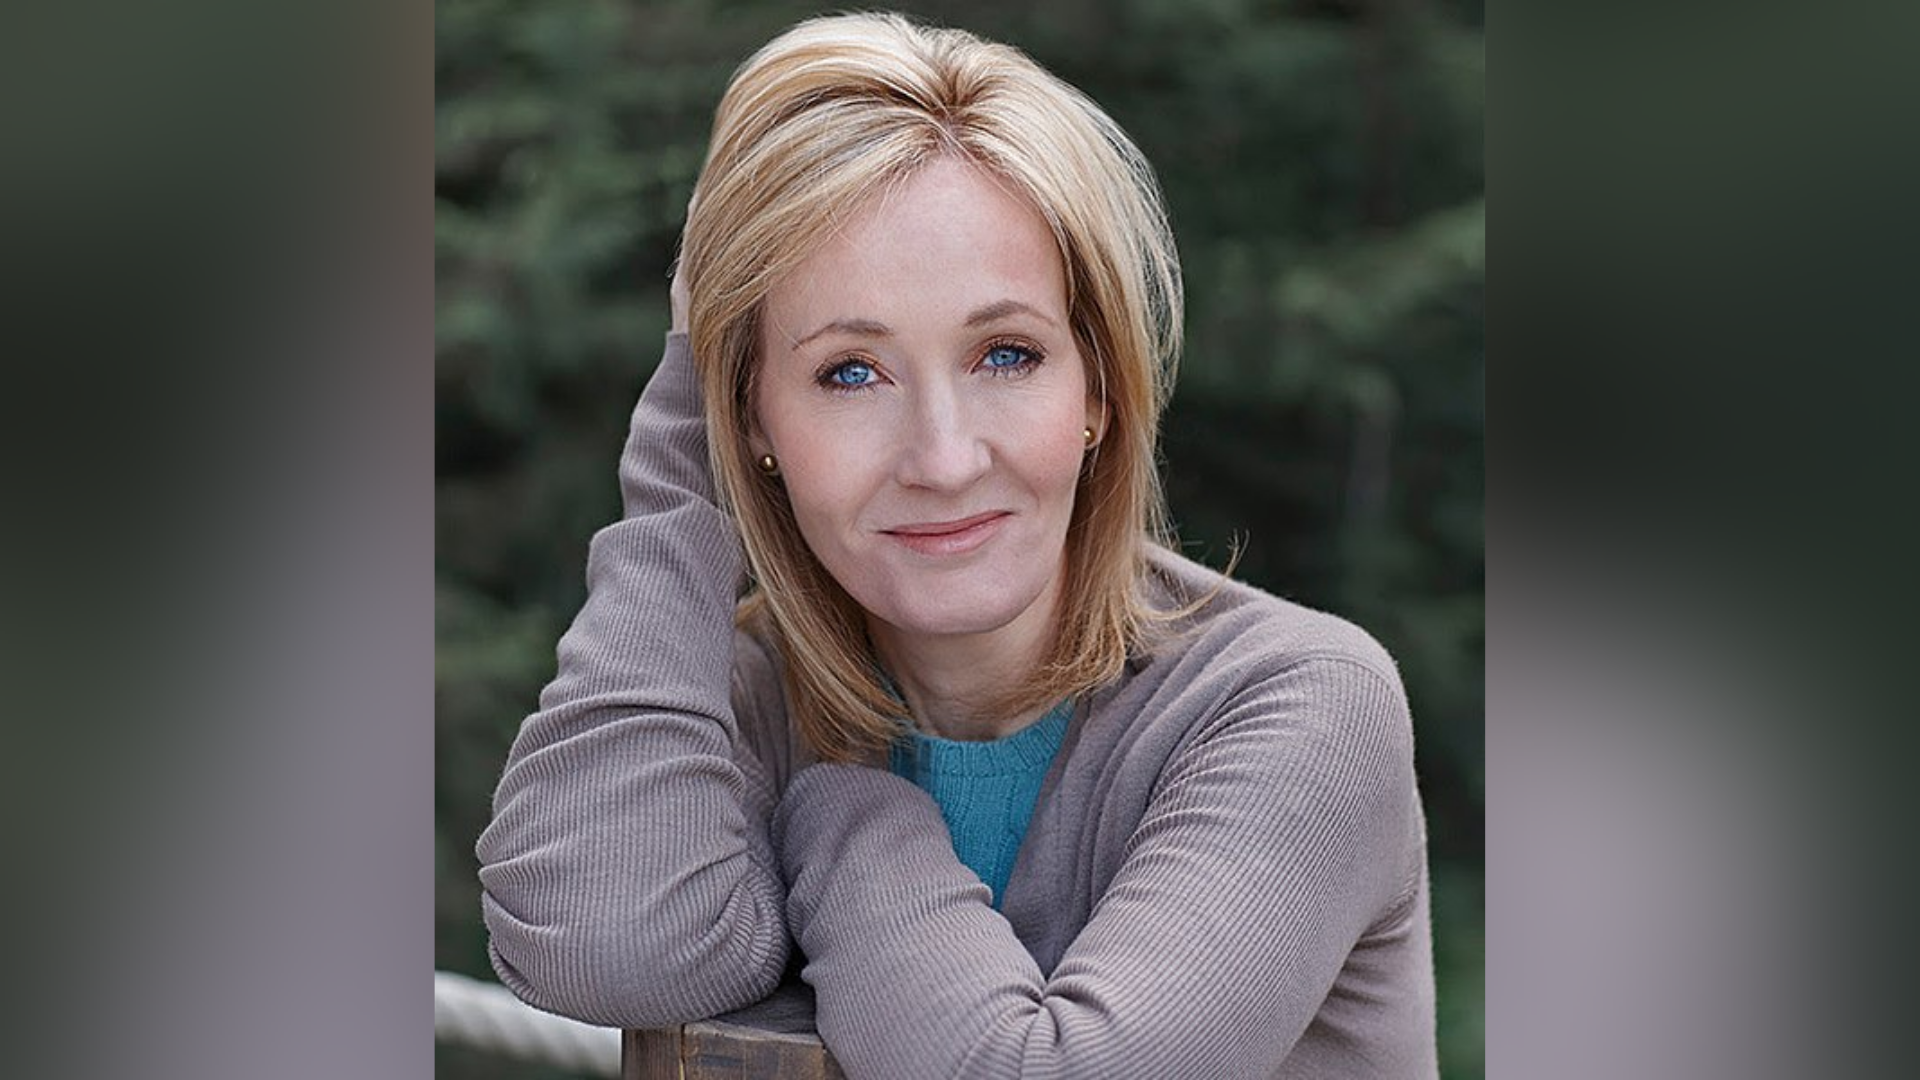 J.K. Rowling Comes Out In Support of Women Fired for Stating Biological Sex Matters